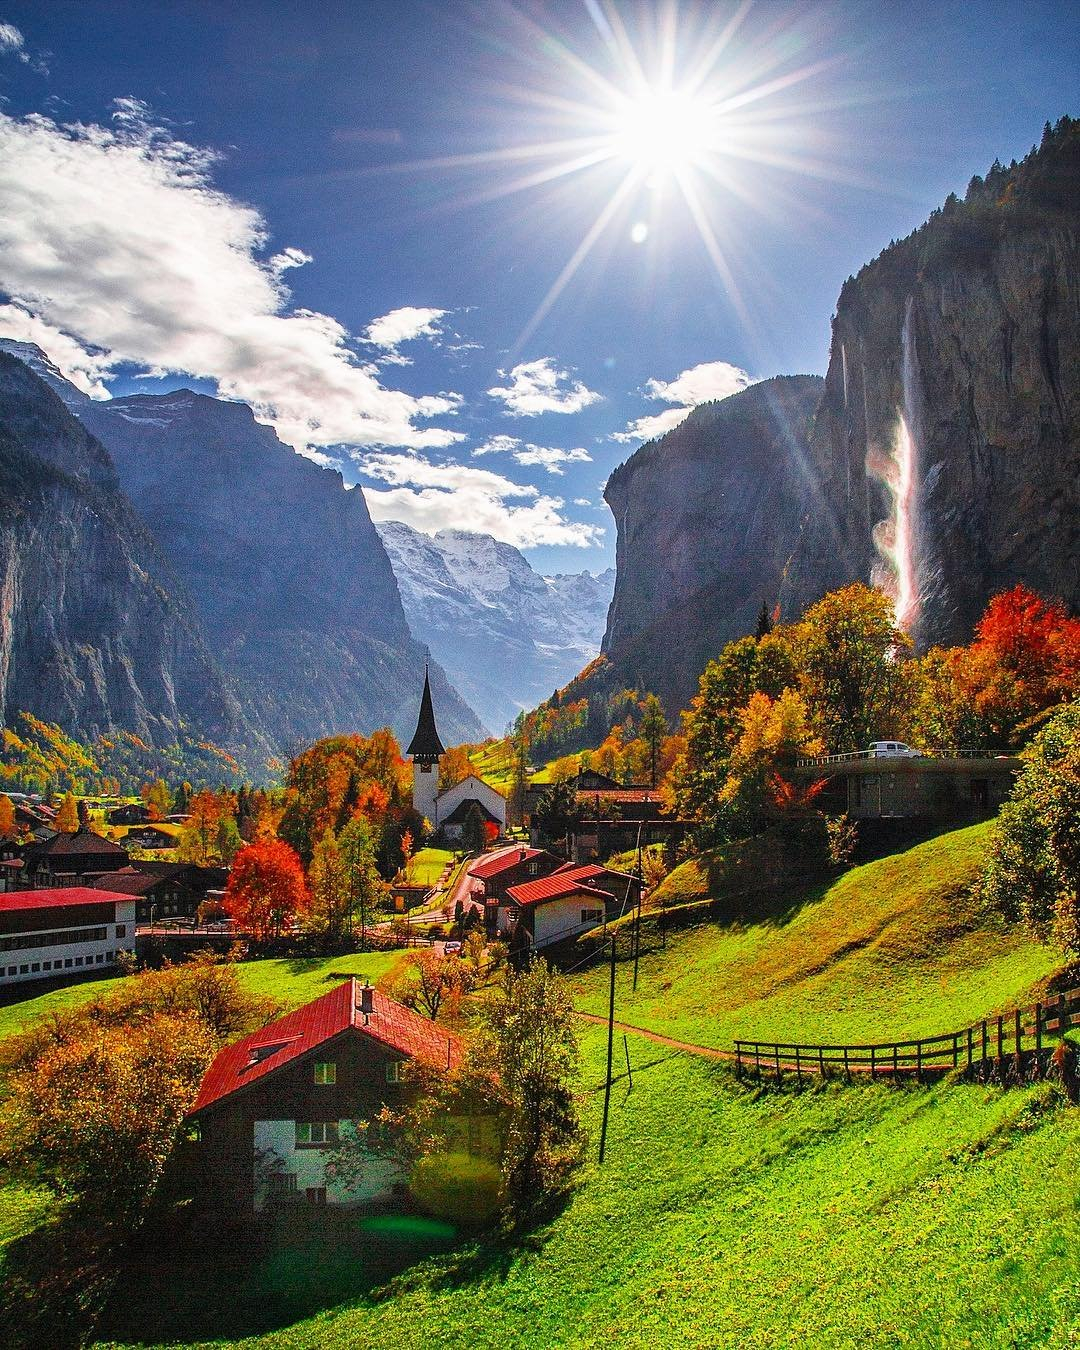 Village Of Lauterbrunnen In Switzerland Beautiful Places